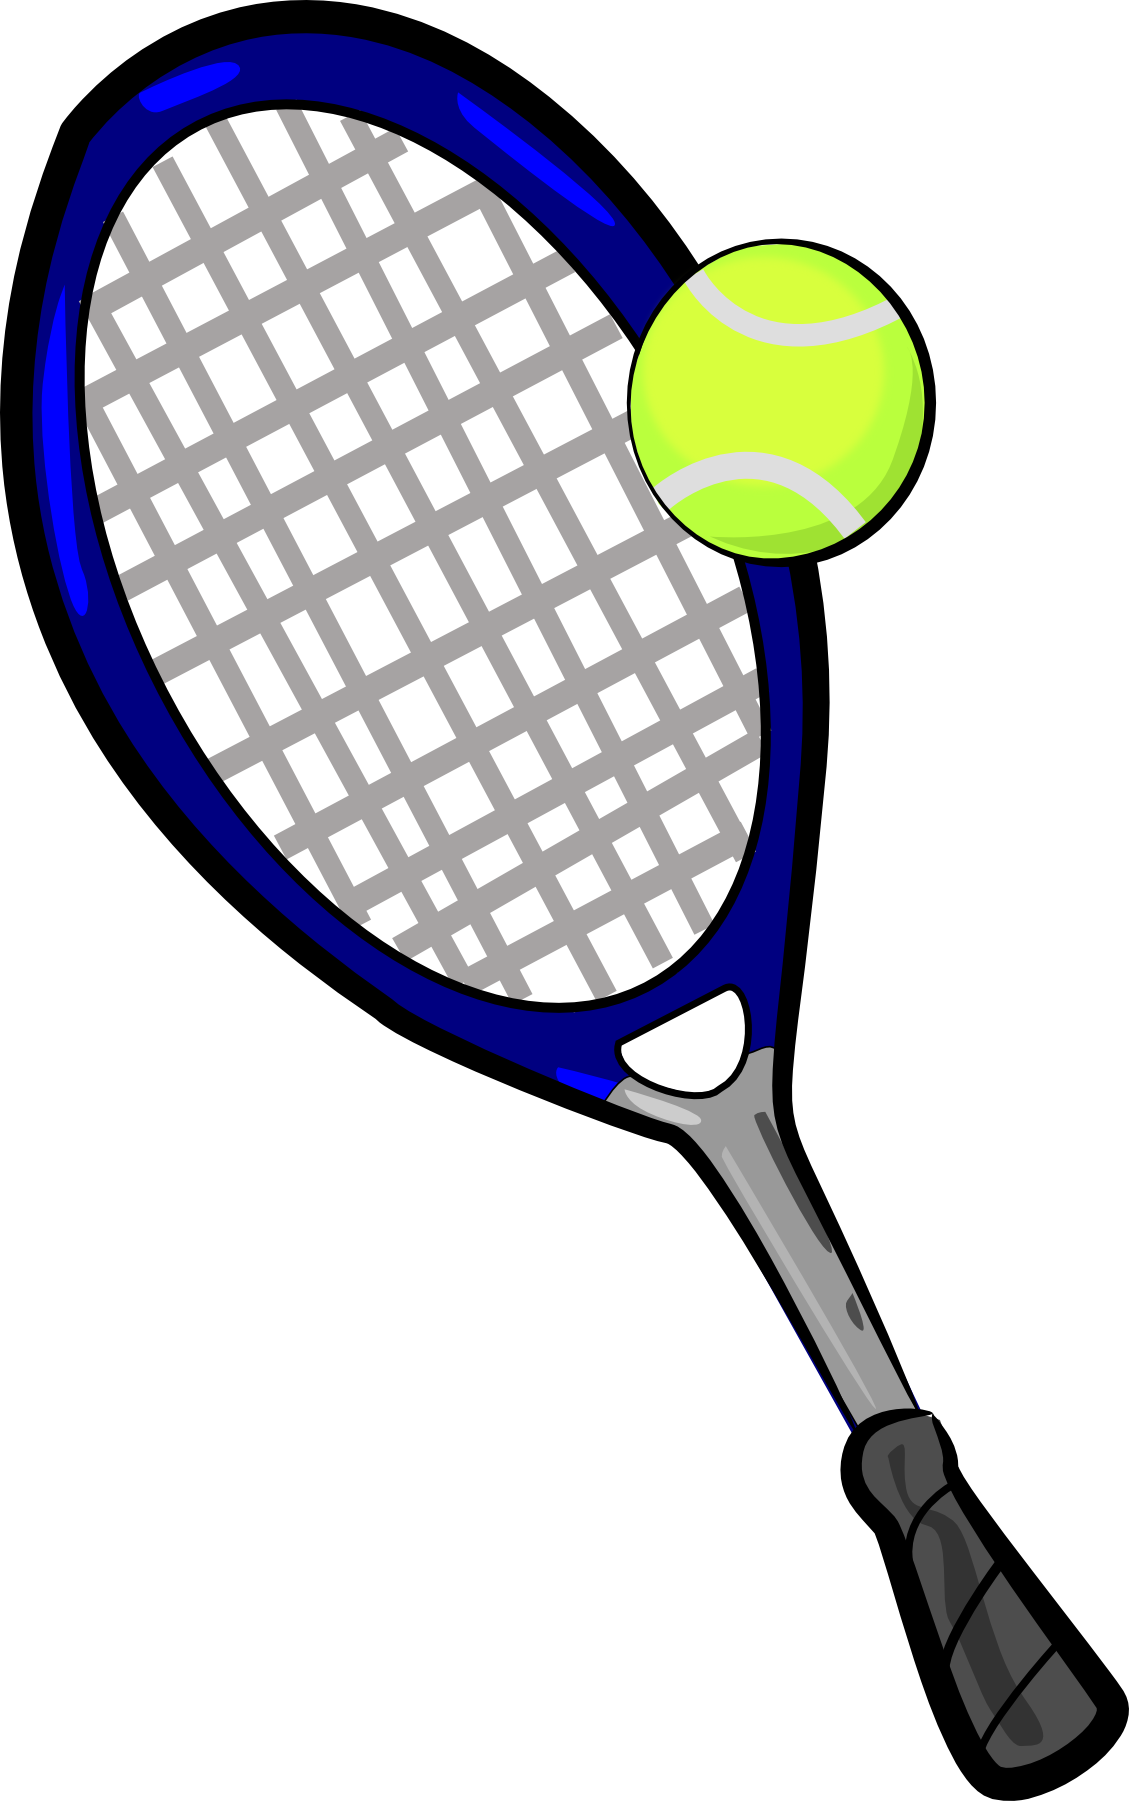 tennis clipart animated